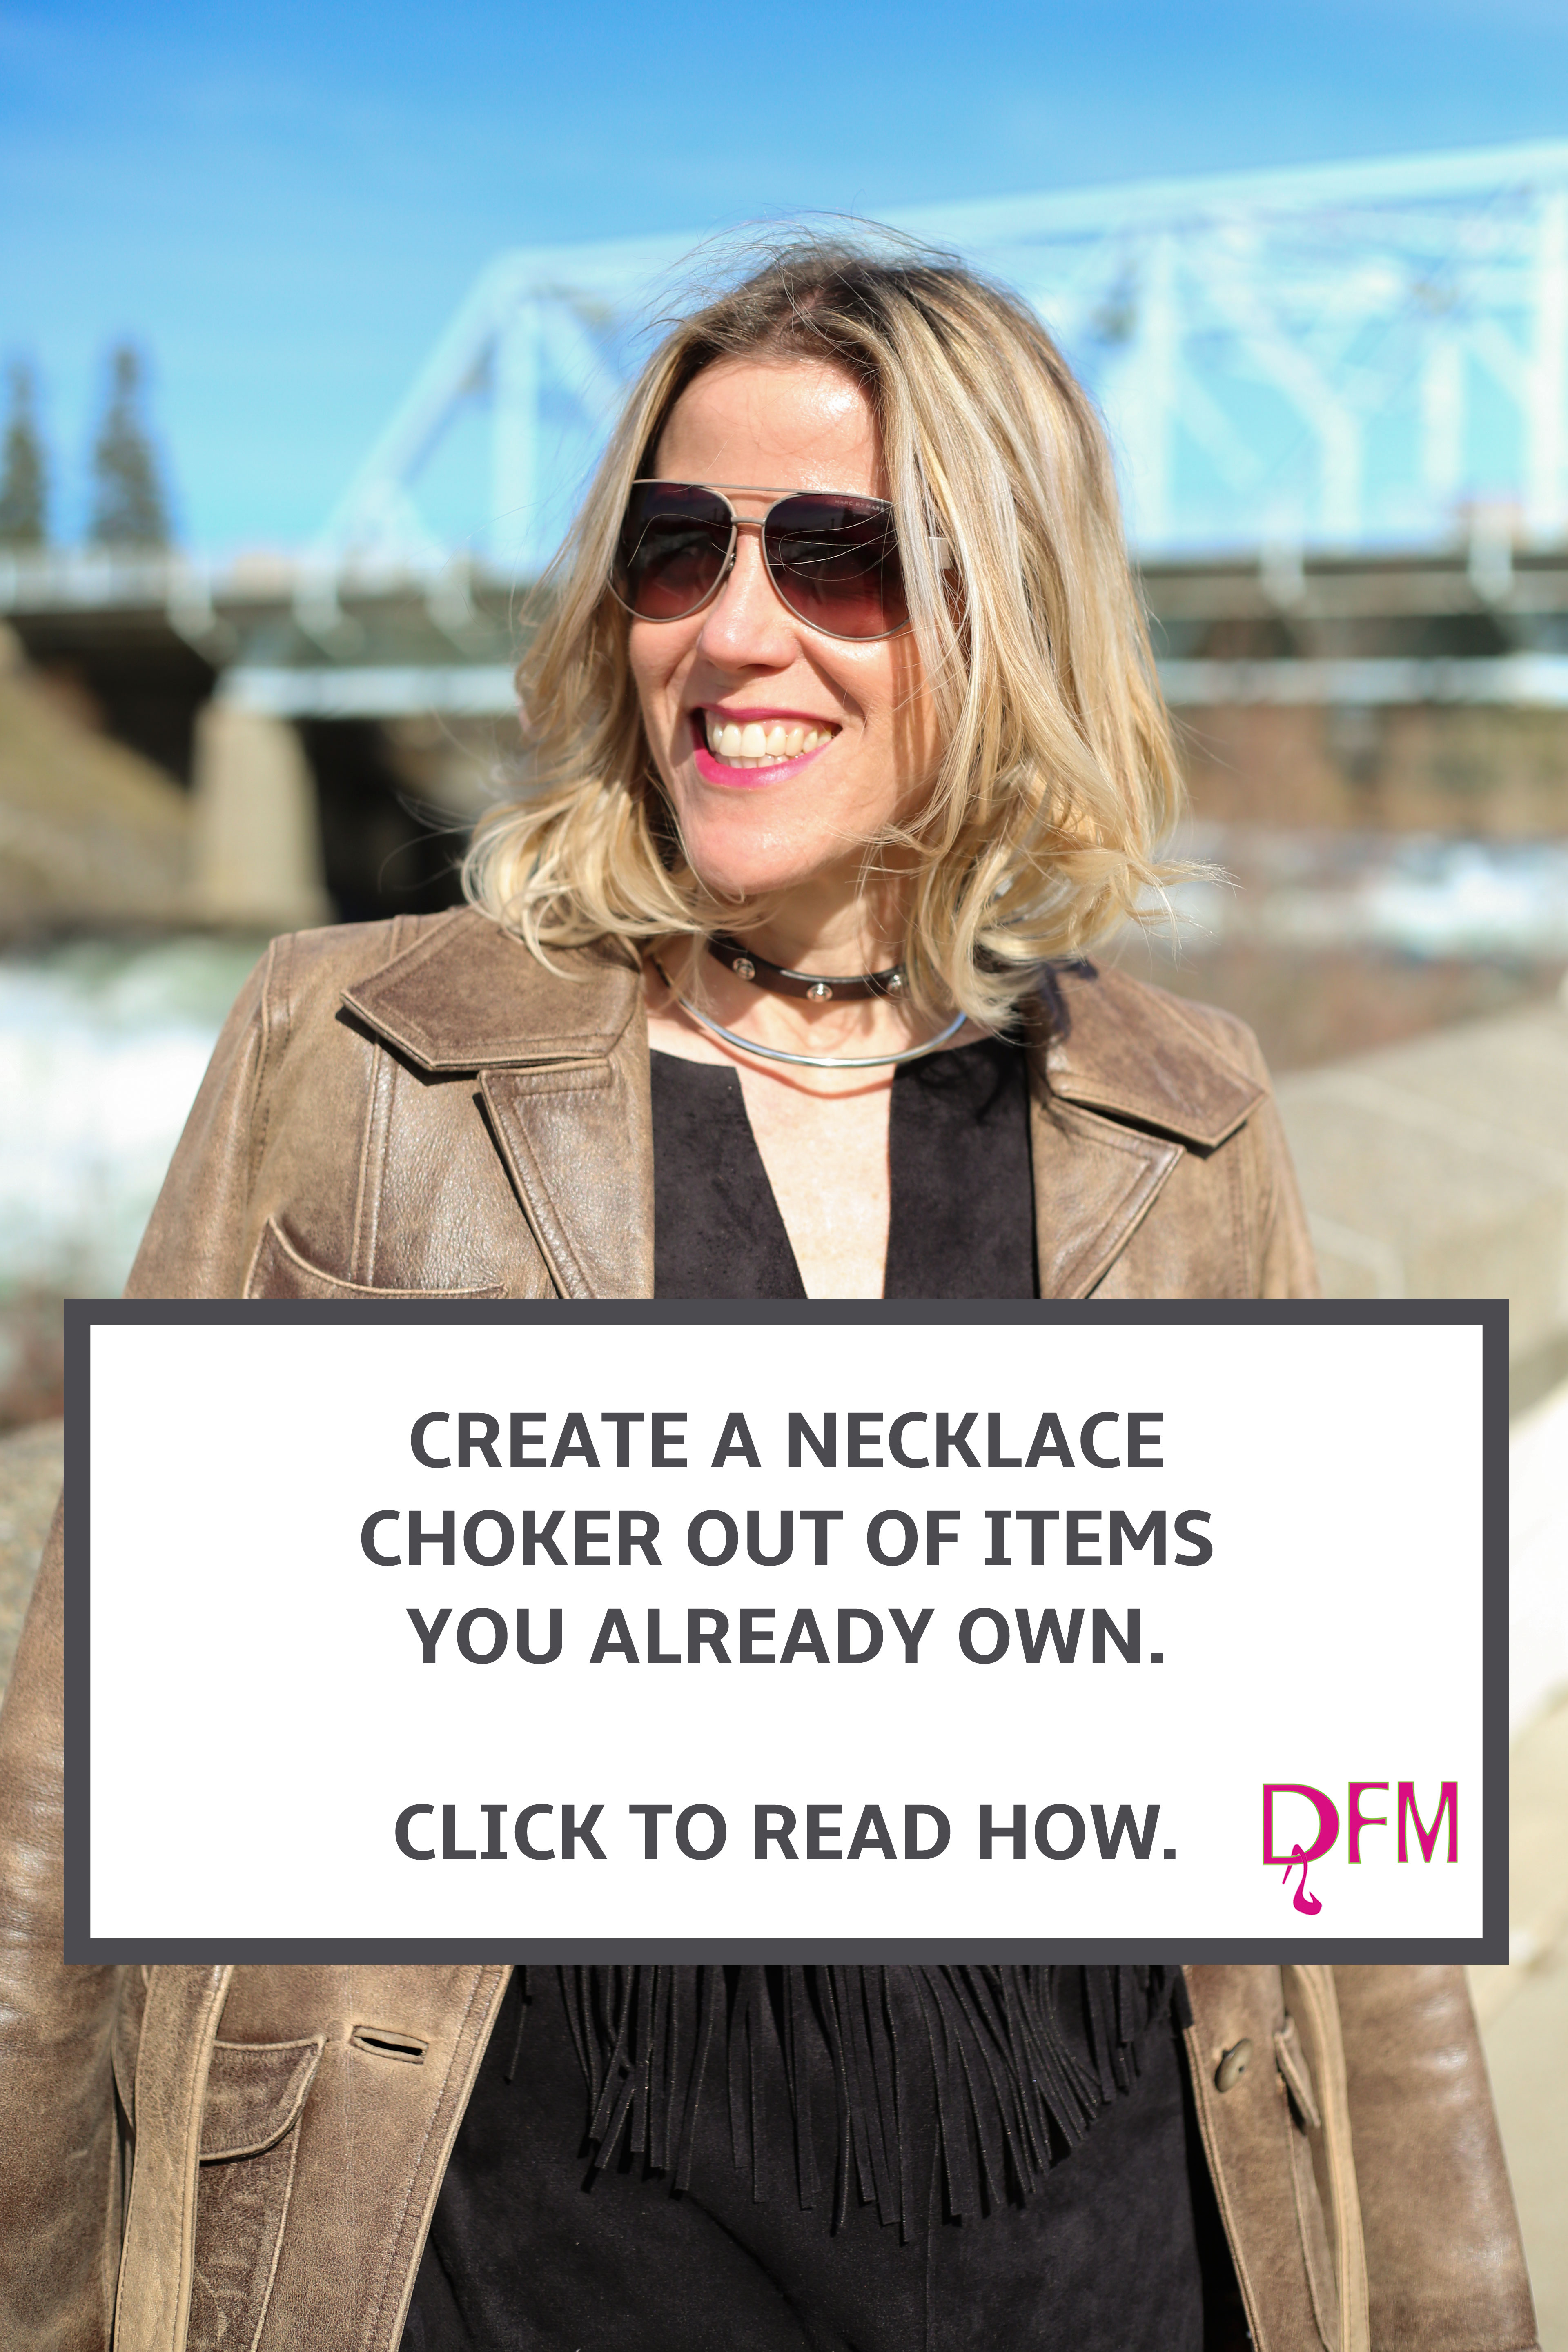 Want to know how to create a necklace choker out of items you may already own? Click through to read about what I discovered hidden in my jewelry box.